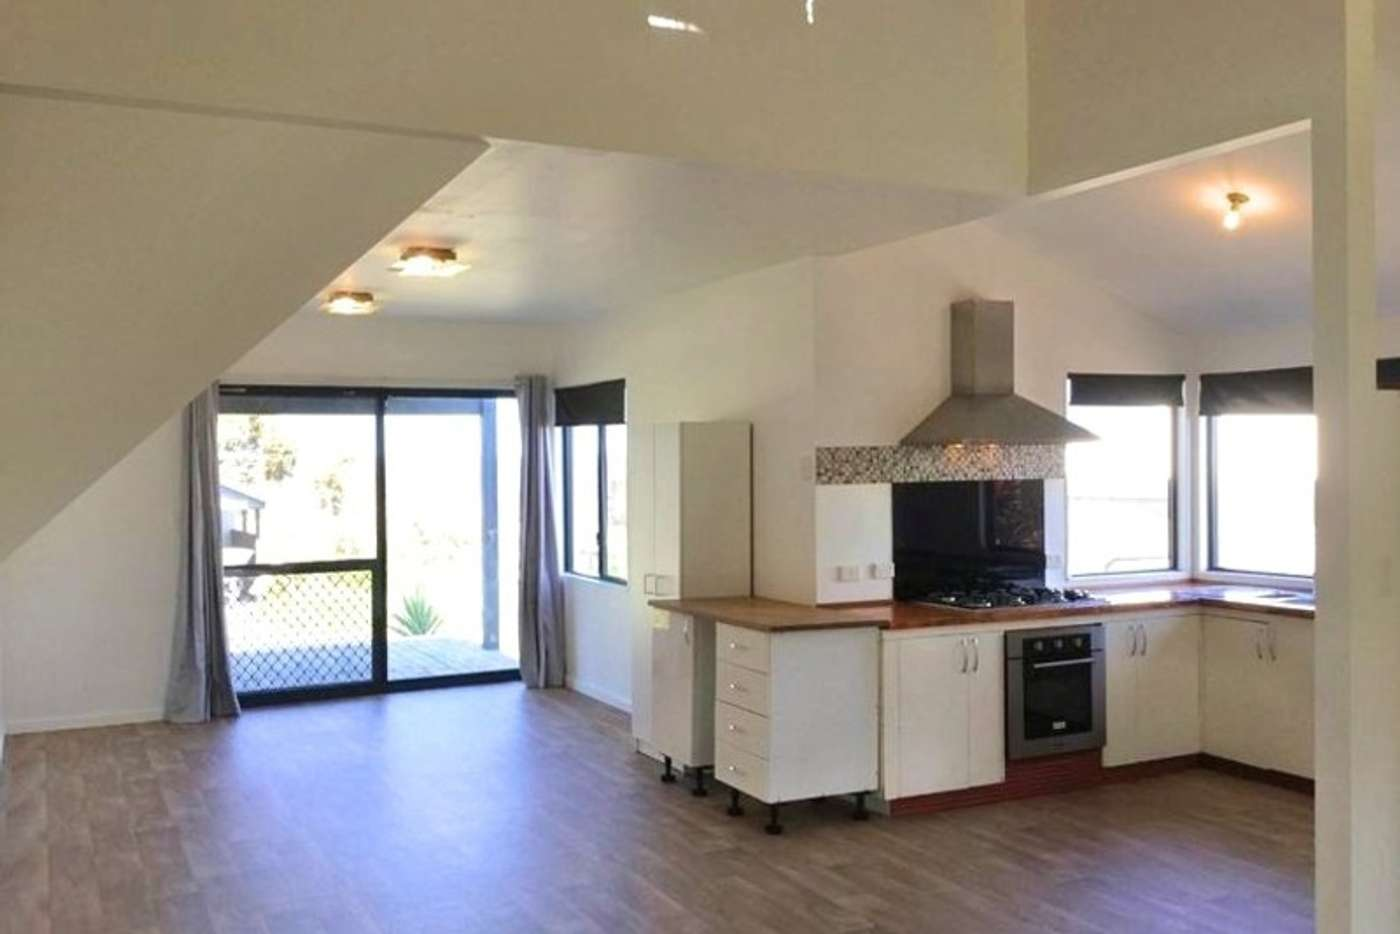 Sixth view of Homely house listing, 7 Russell Rise, Denmark WA 6333